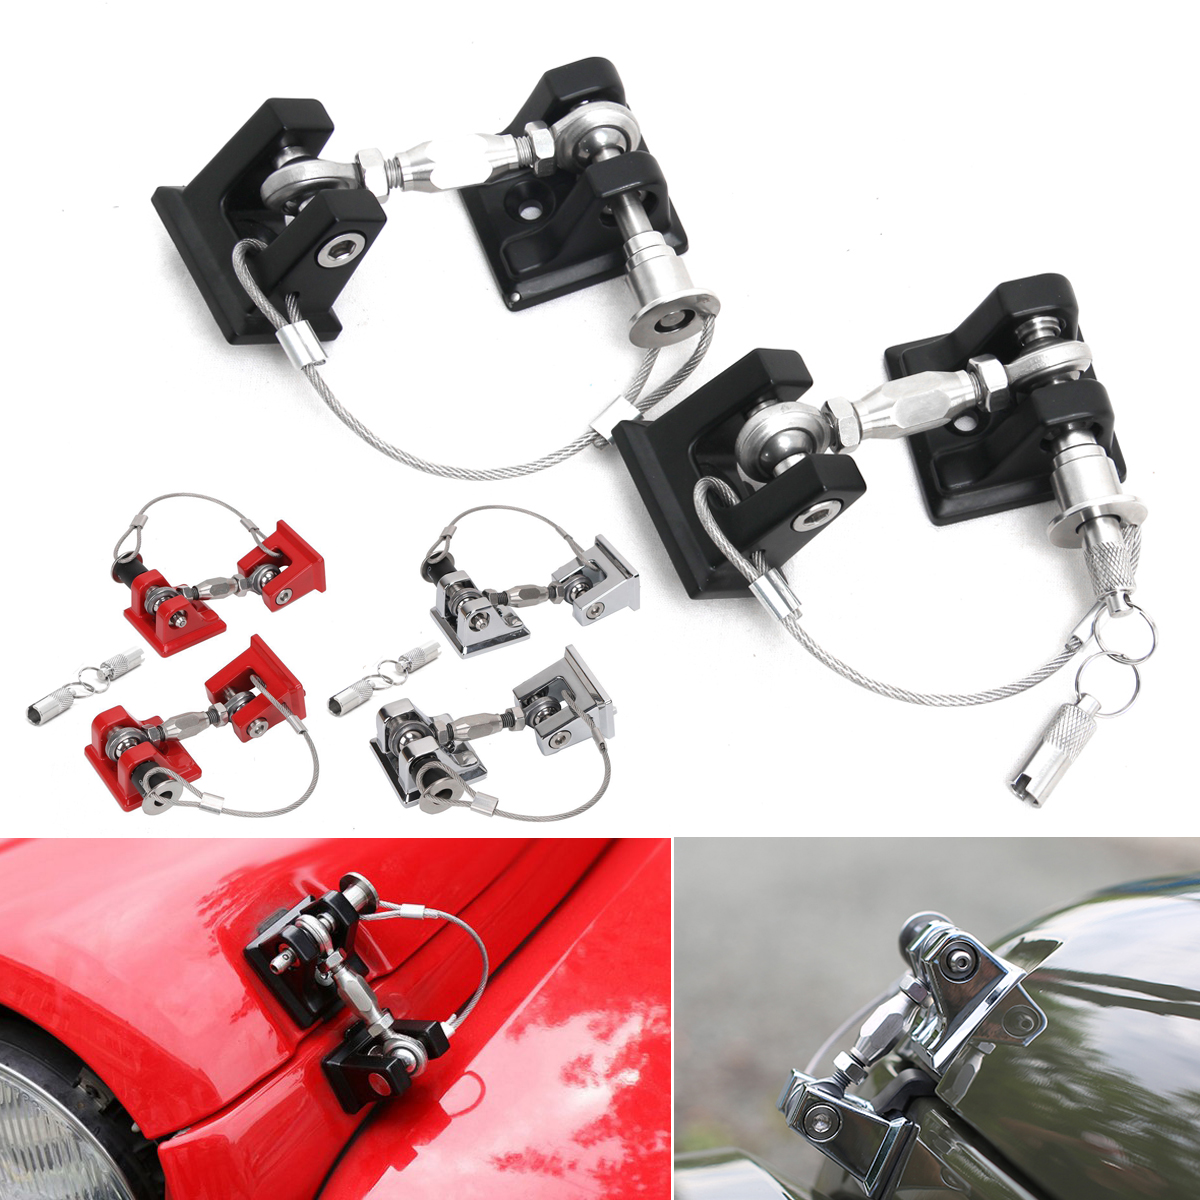 1Pair Car Engine Hood Lock Latches Catch Locking Anti-Theft Key Kit for Jeep for Wrangler JK 2007-2017 3 Color